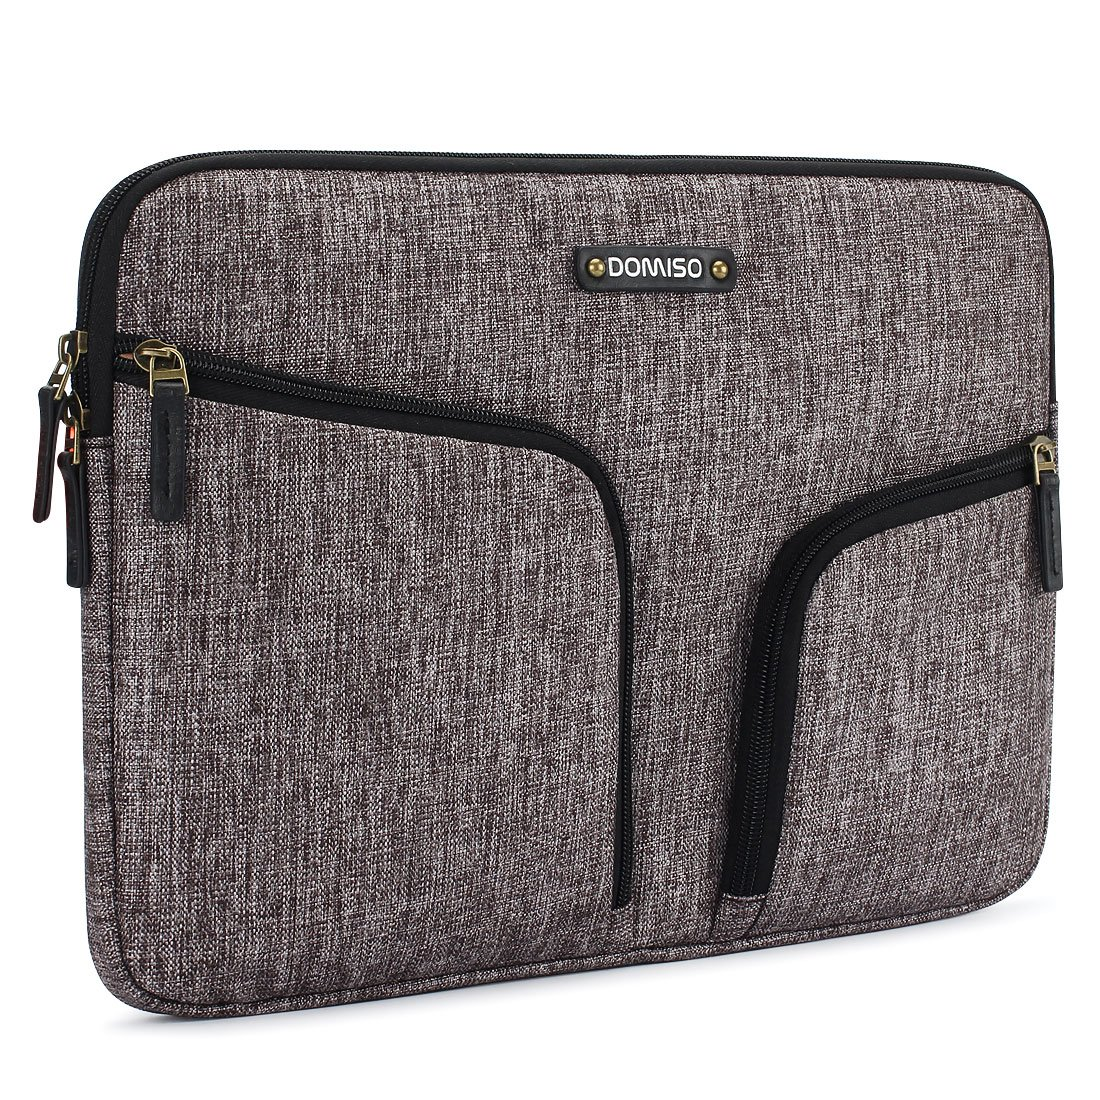 DOMISO 10.1 inch Waterproof Laptop Sleeve Canvas with Back Handle Protective Bag for 10.1-10.5 inch Laptops/eBooks / Kids Tablet/iPad Pro/iPad Air/Lenovo Yoga Book/Asus / Acer, Grey